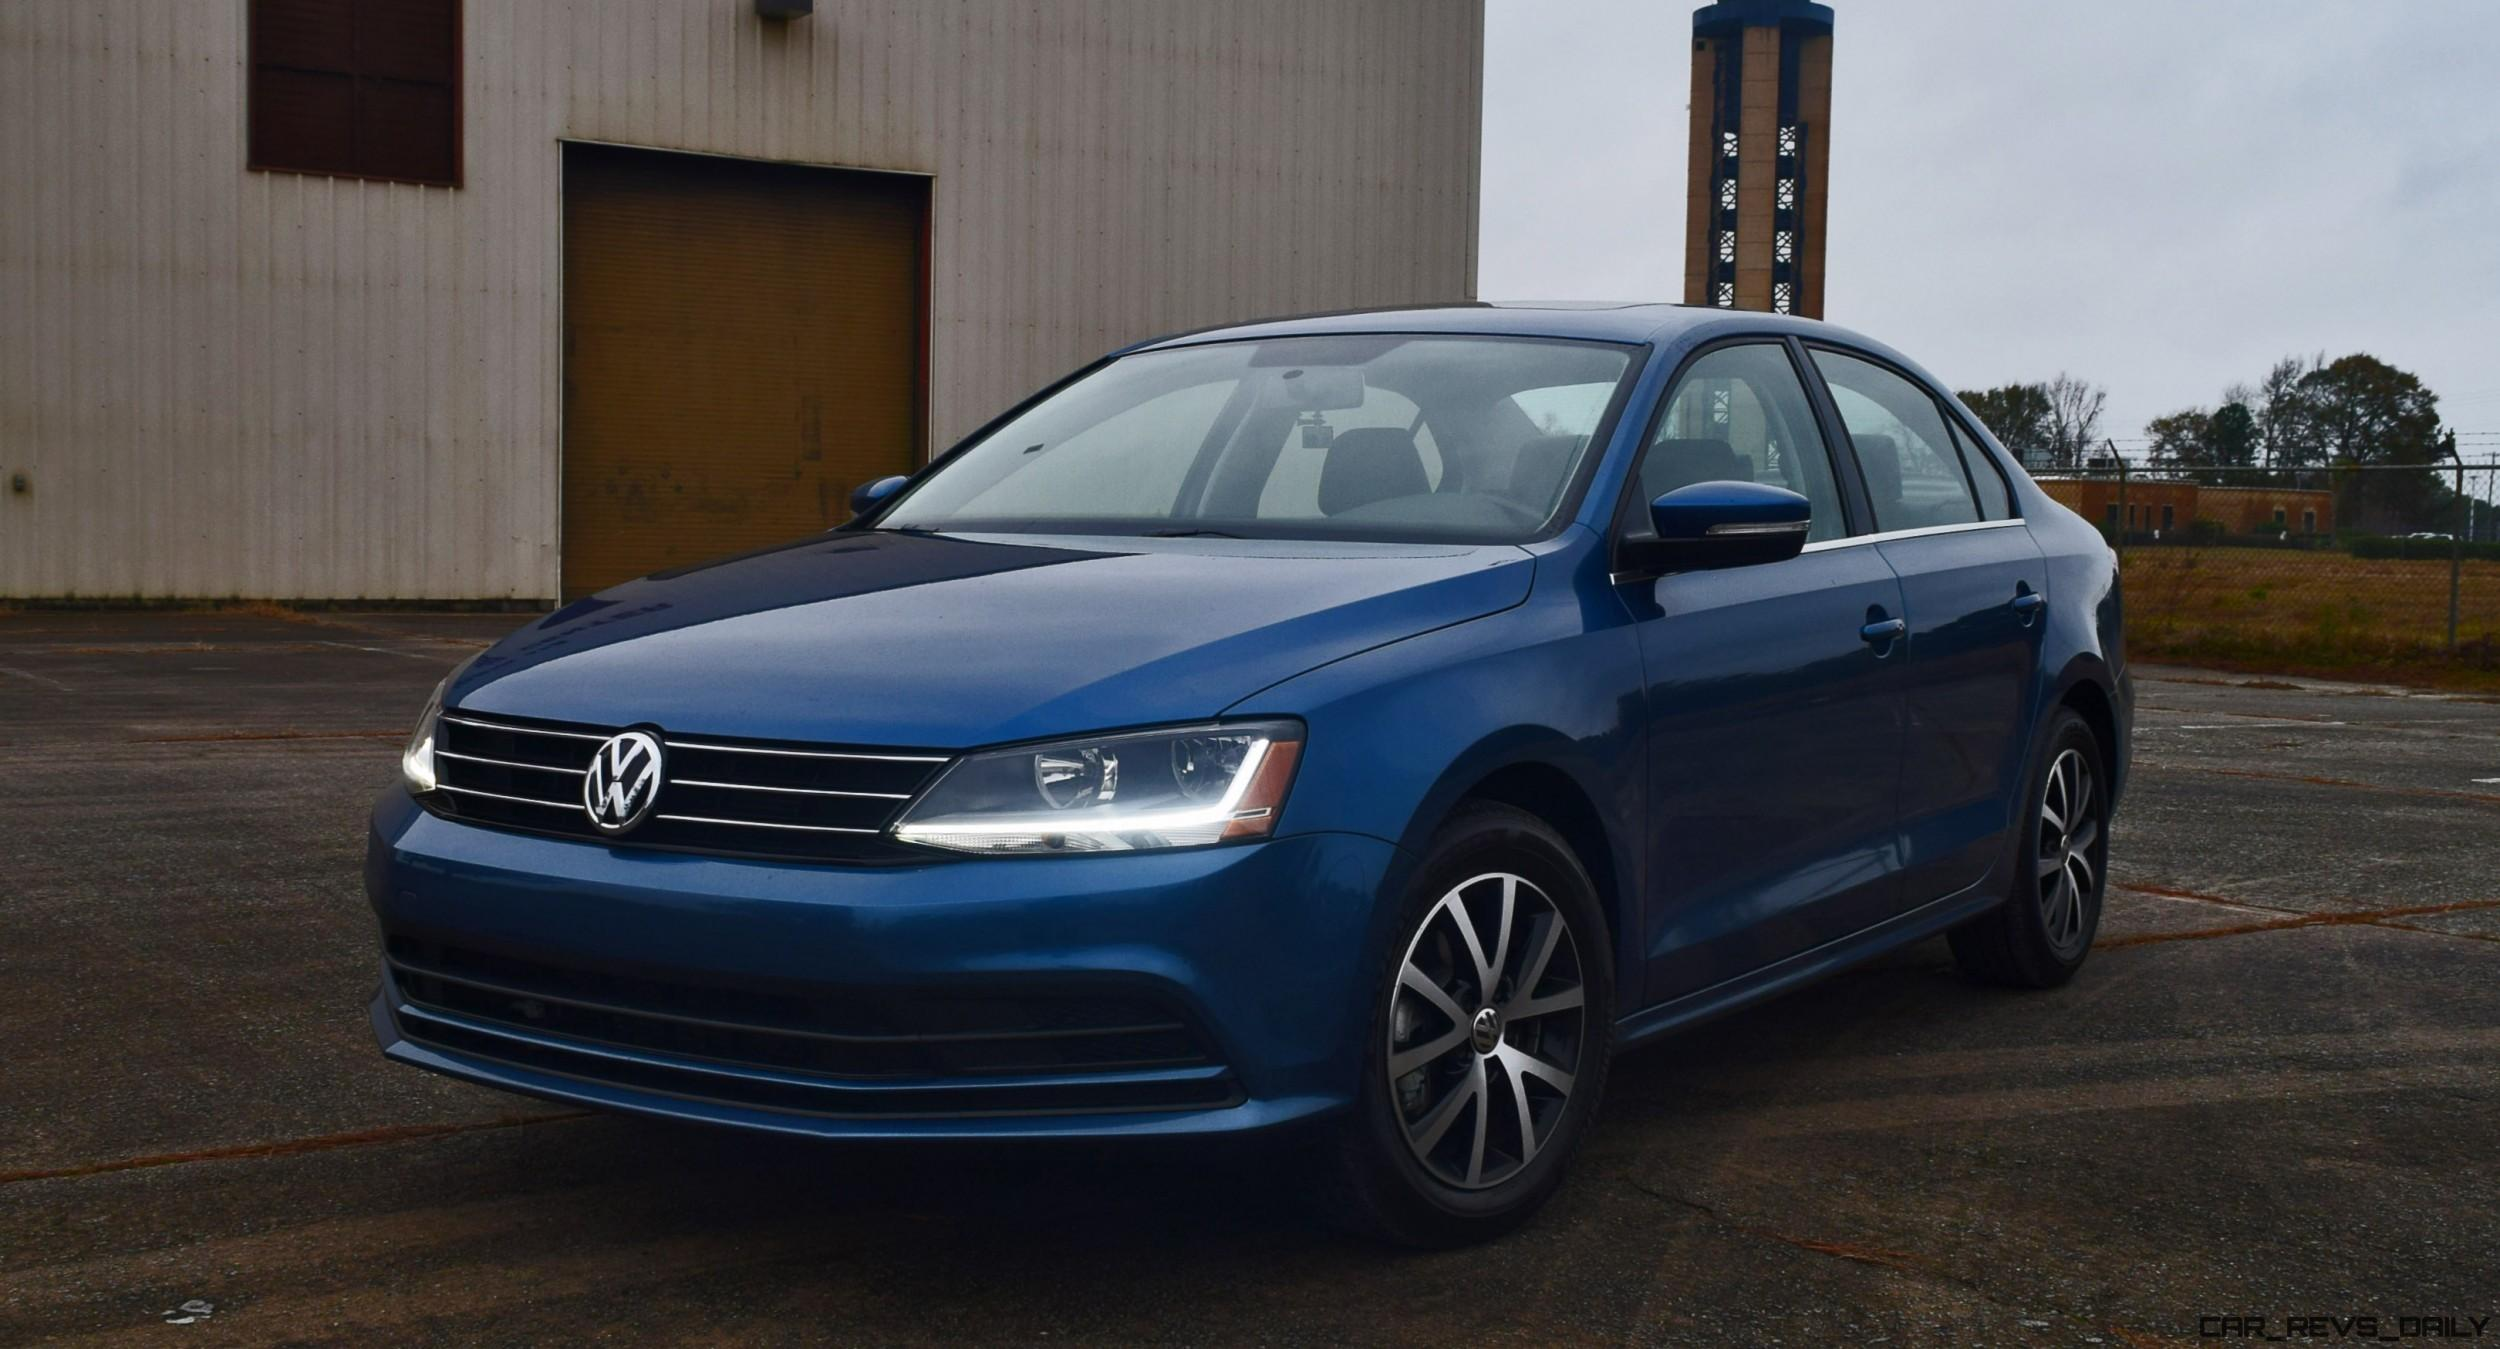 2017 vw jetta 1 4t se manual hd road test review. Black Bedroom Furniture Sets. Home Design Ideas